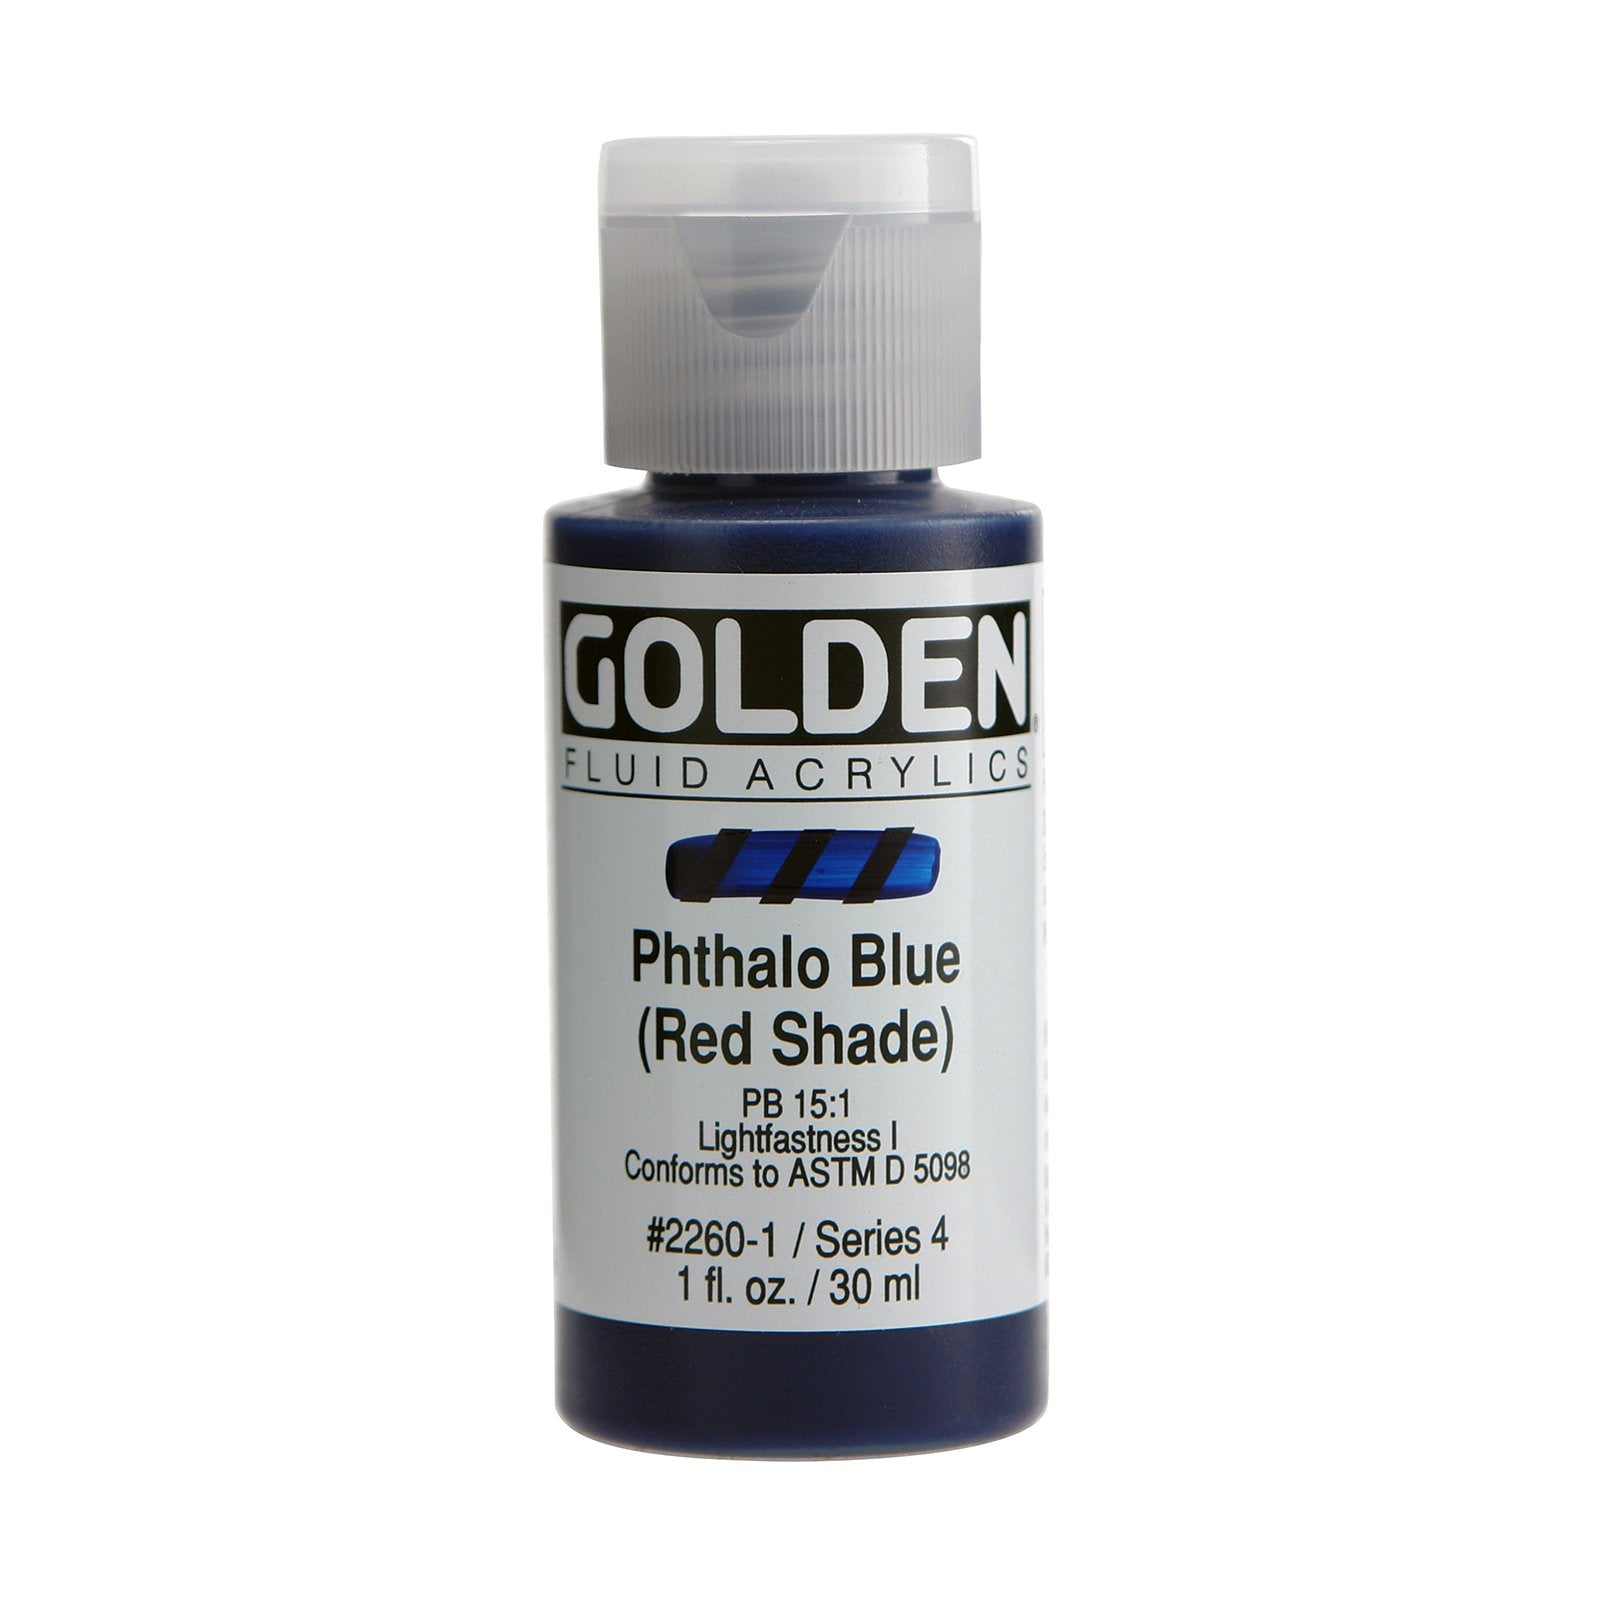 Golden® Fluid Acrylic, 1 oz., Phthalo Blue/ Red Shade